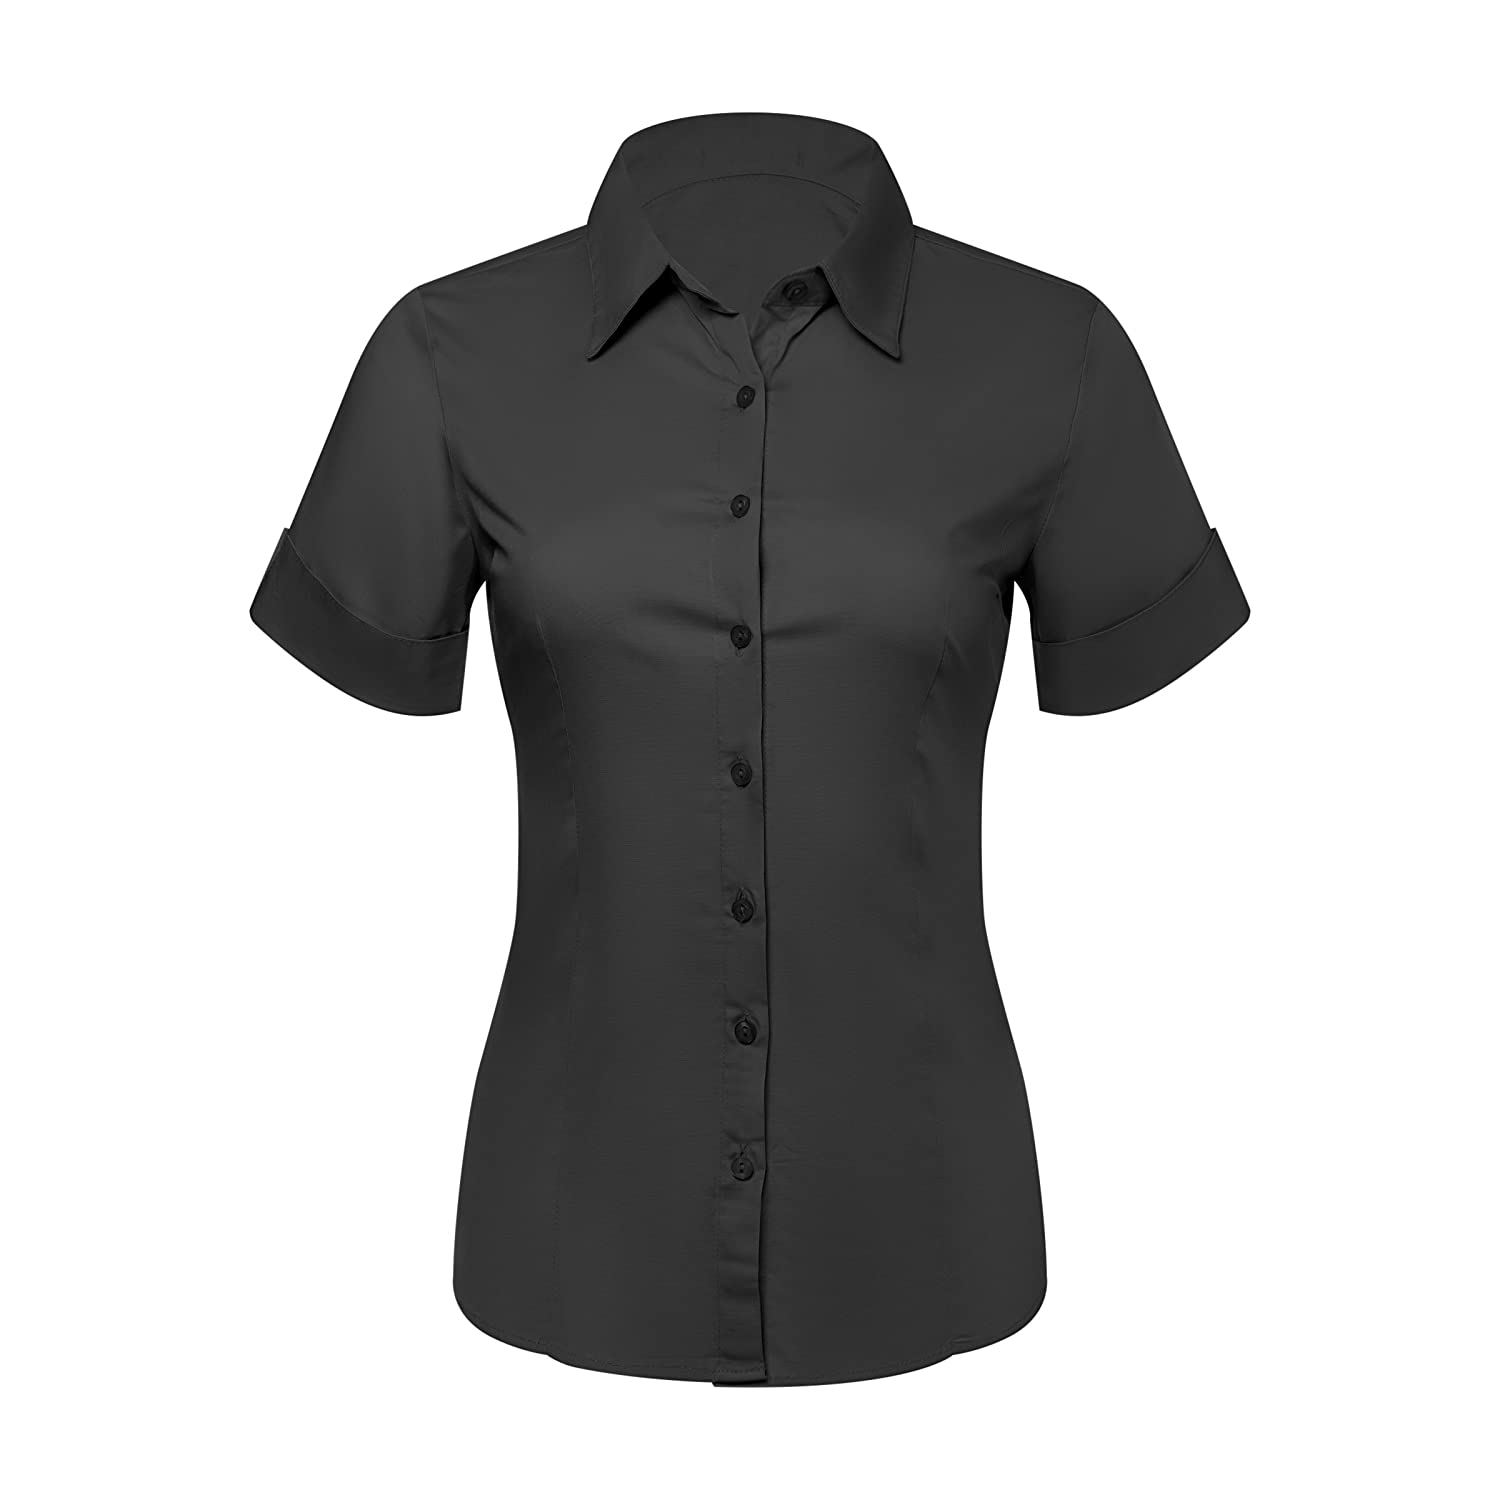 25a3efece81 Top 10 wholesale Best Fitted Button Down Shirts For Women ...